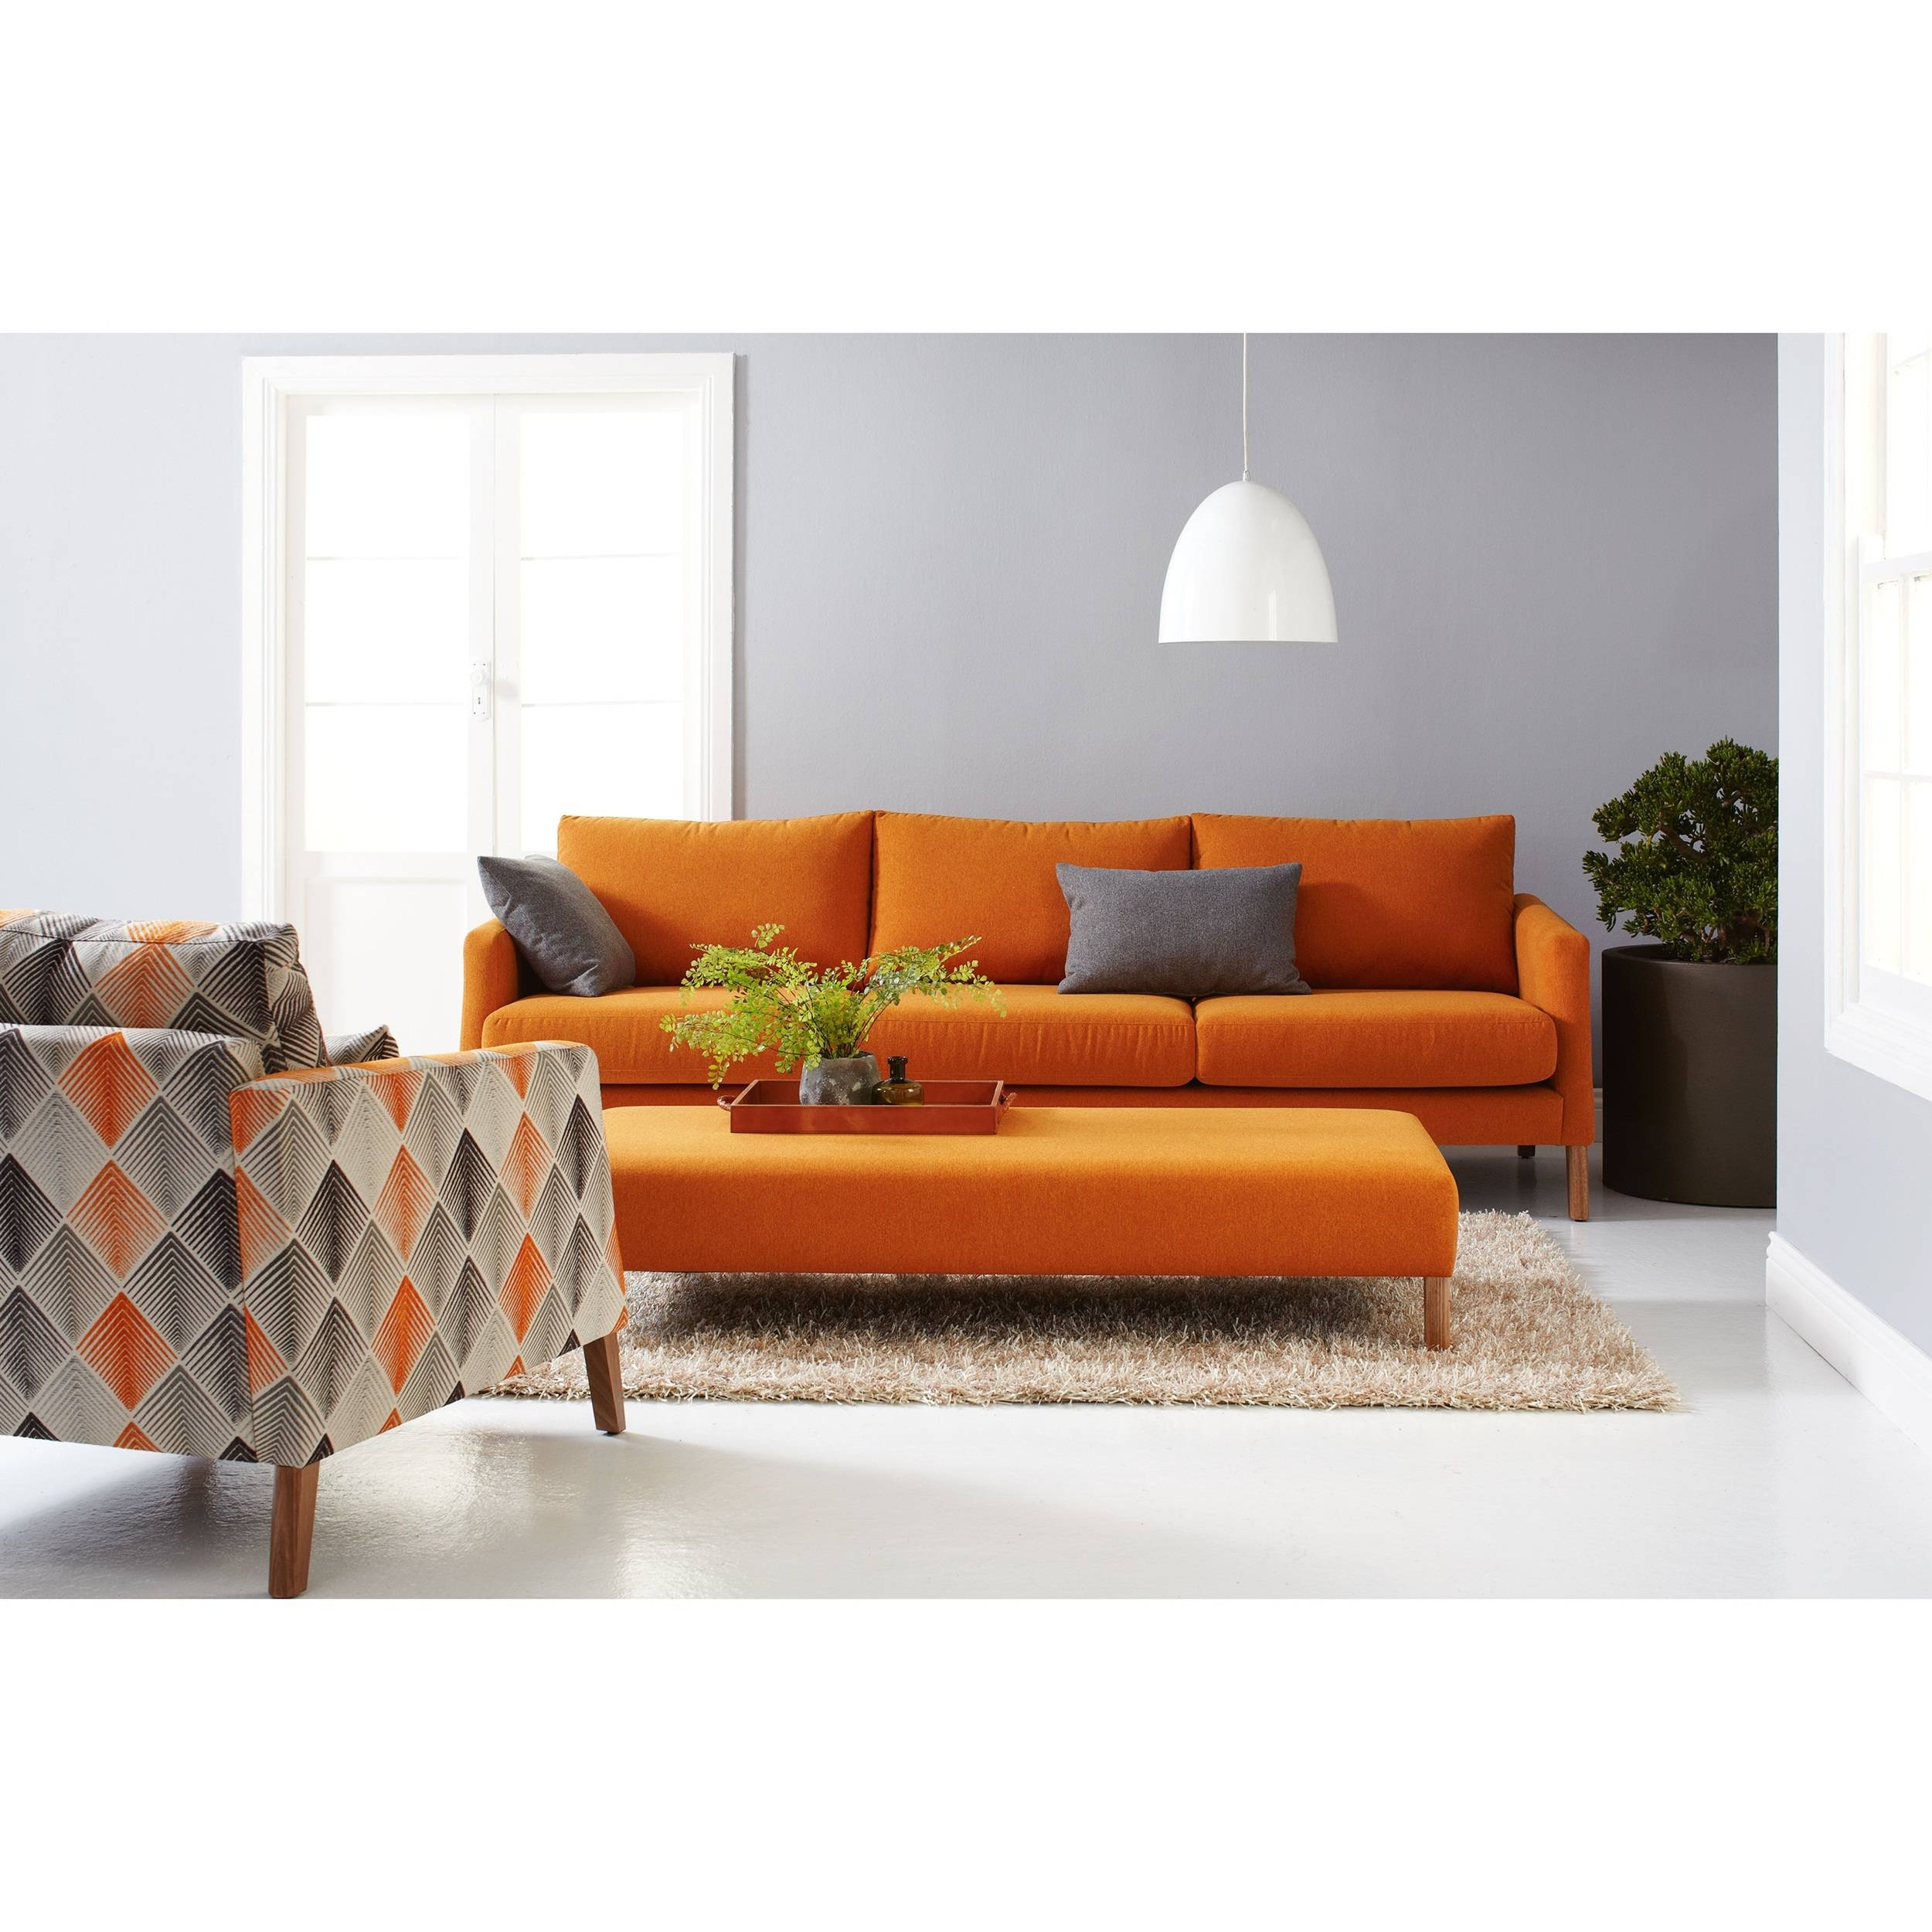 Orange Sofa Interior Design Orange Sofa. Orange Sofa Interior intended for Orange Modern Sofas (Image 14 of 15)